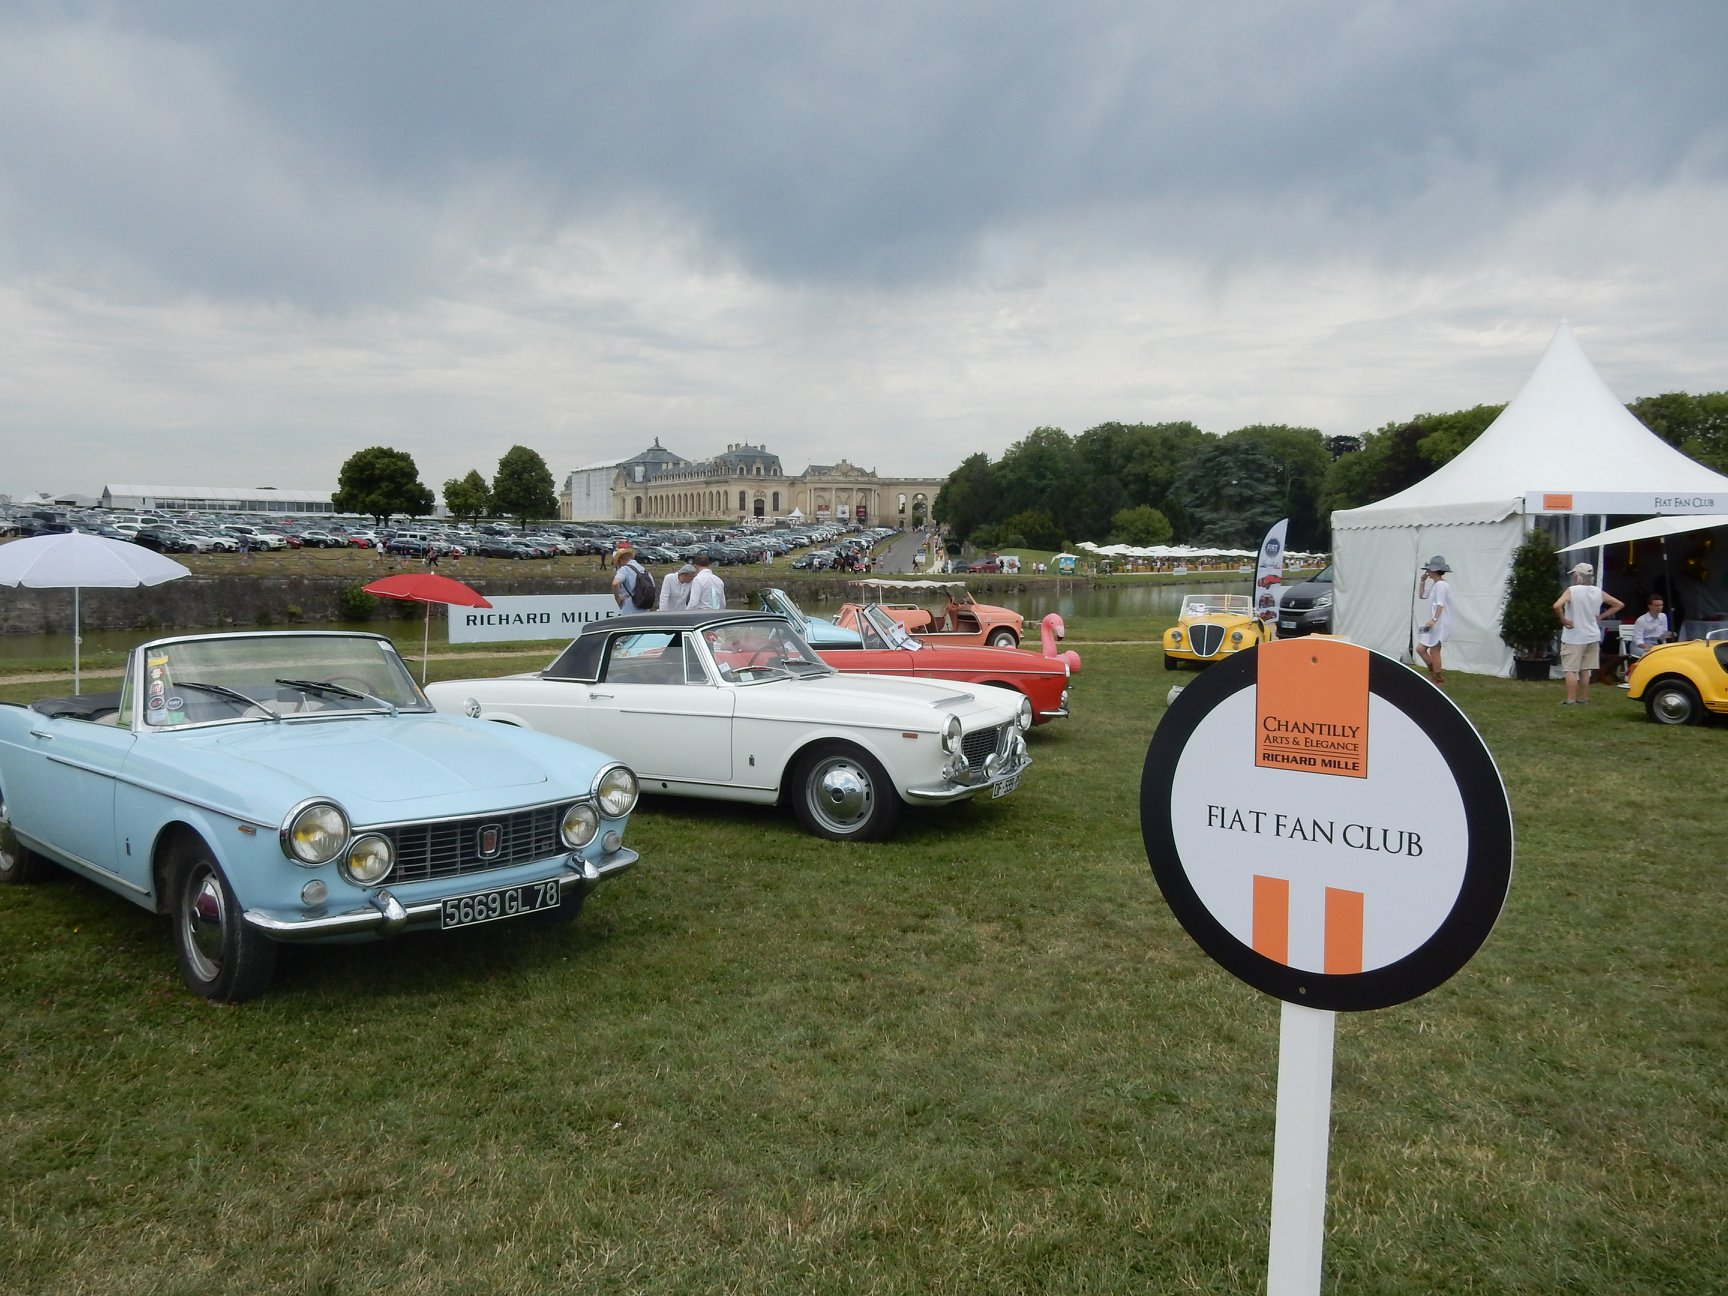 Stand Fiat fan club Chantilly 2019